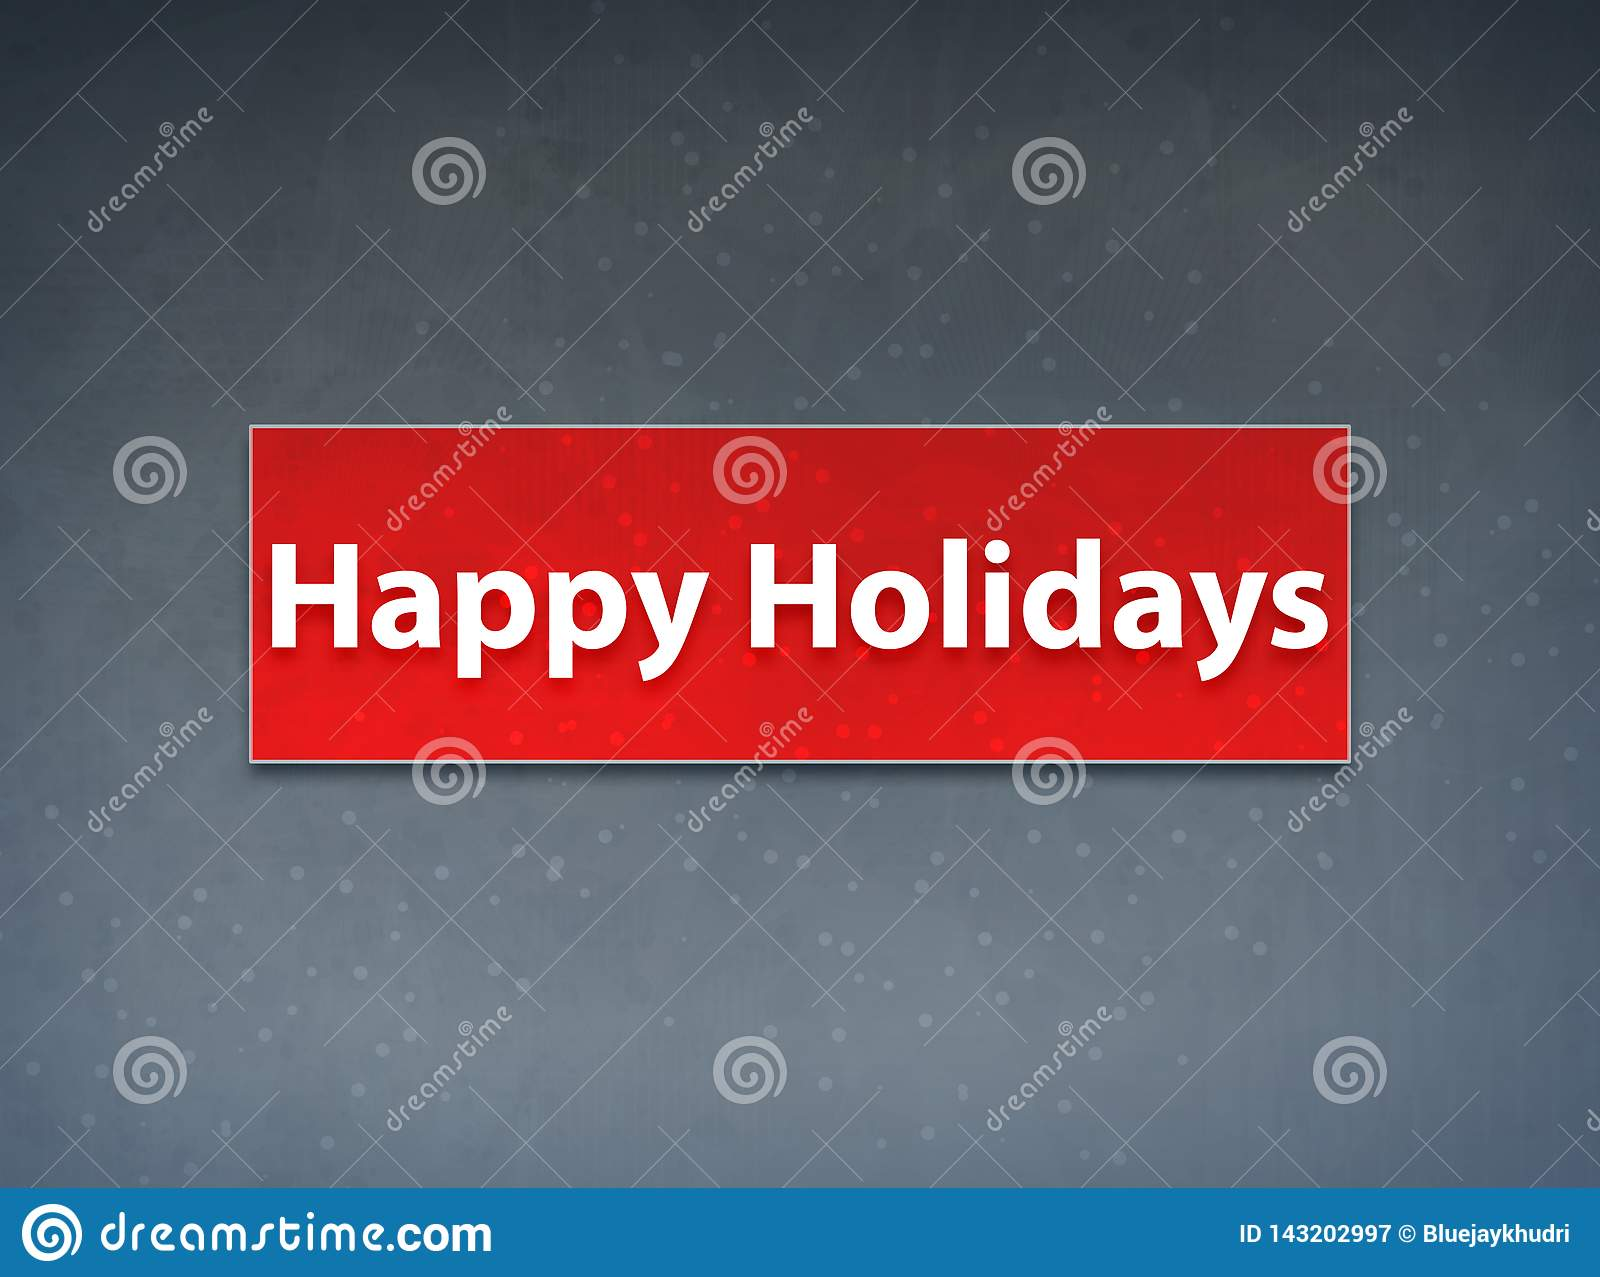 Happy Holidays Red Banner Abstract Background